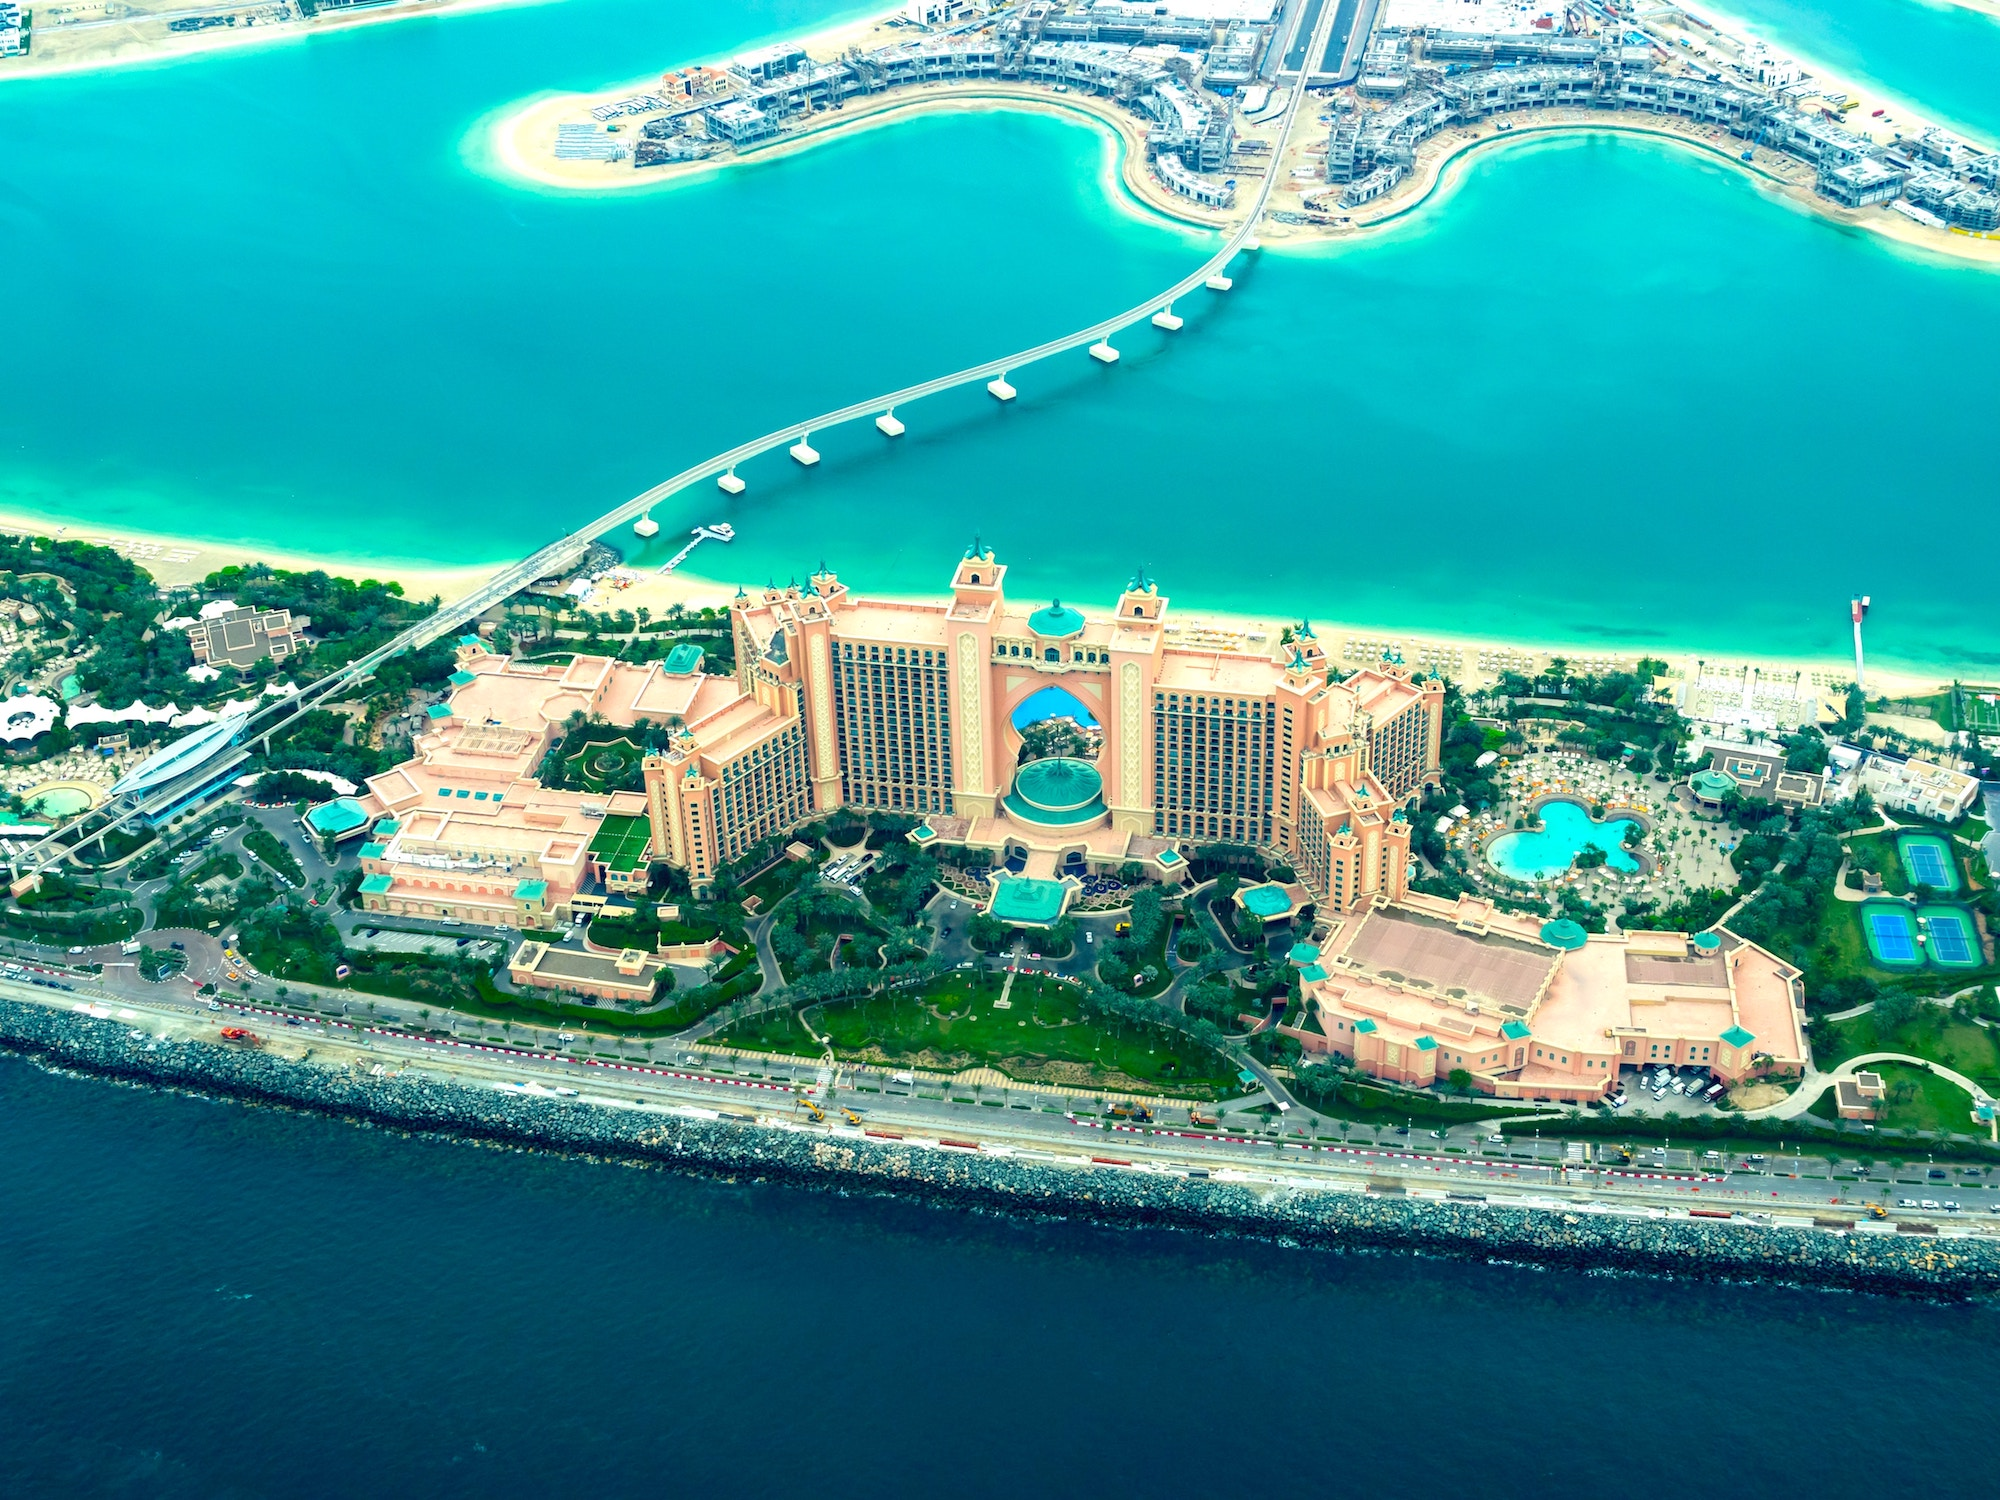 Palm Atlantis